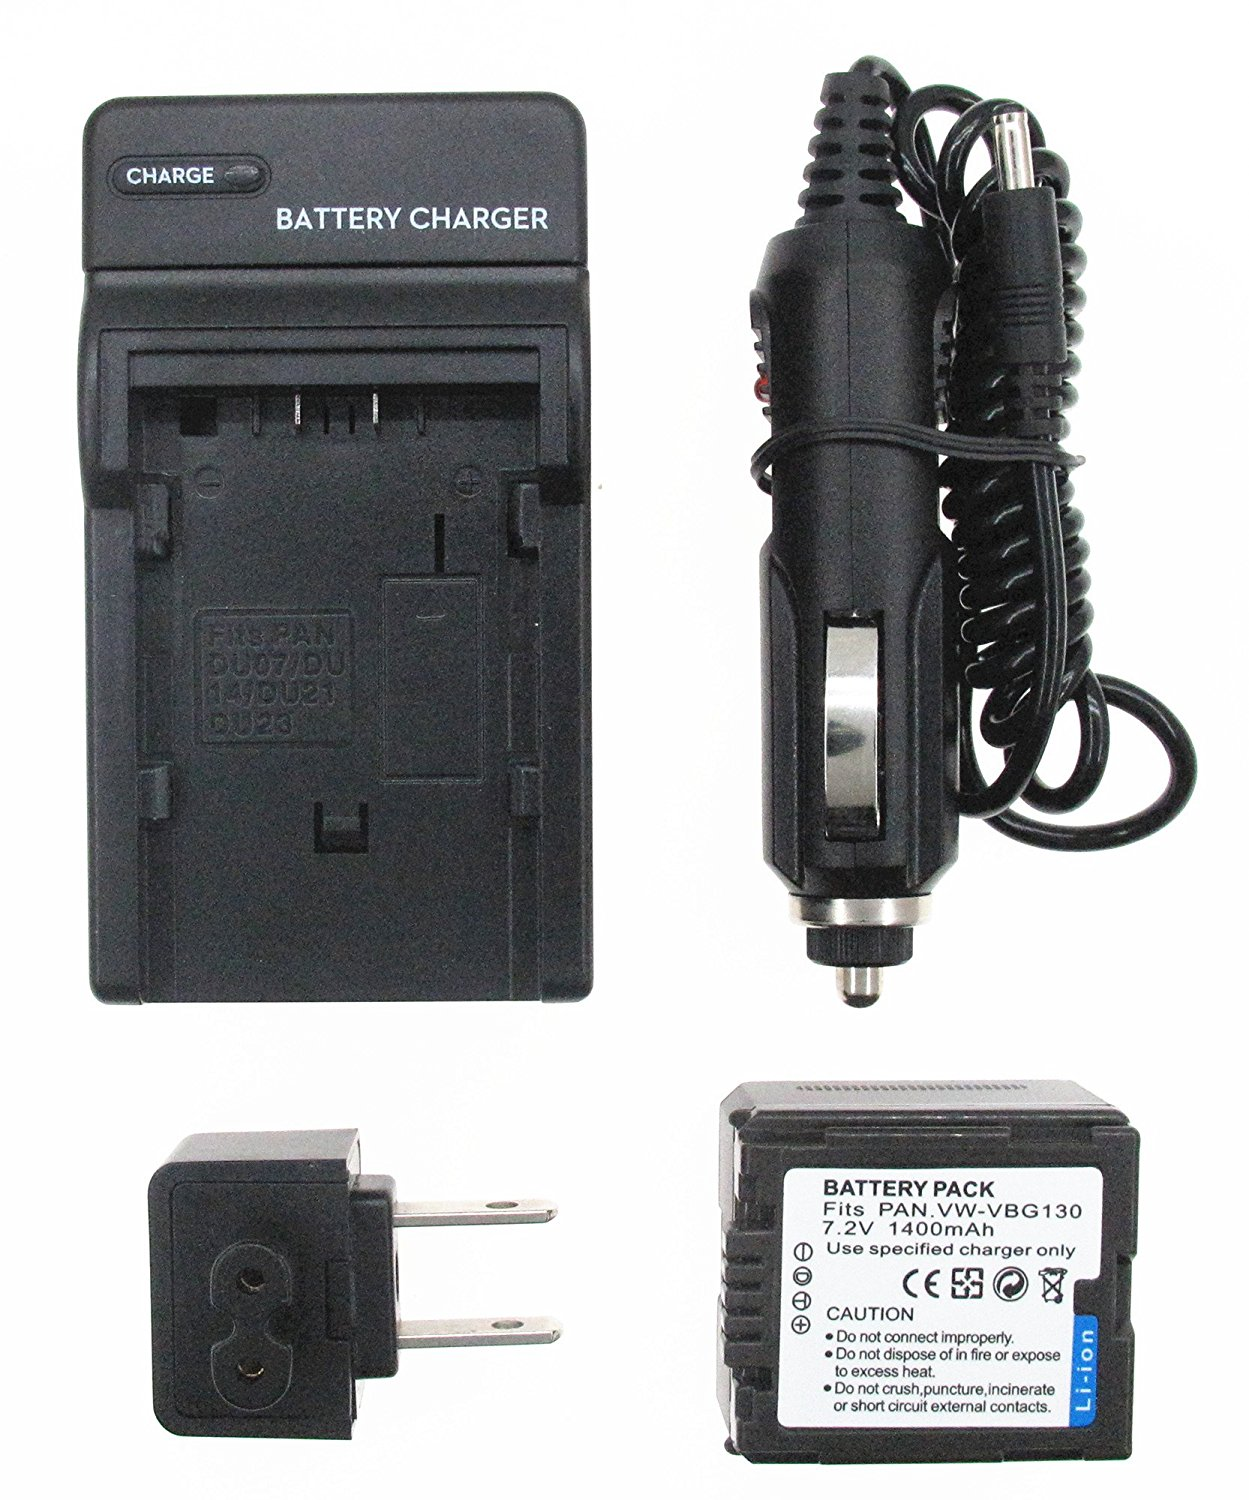 SDR-H80S Camcorder Battery Charger for Panasonic SDR-H80A,SDR-H80K SDR-H80R